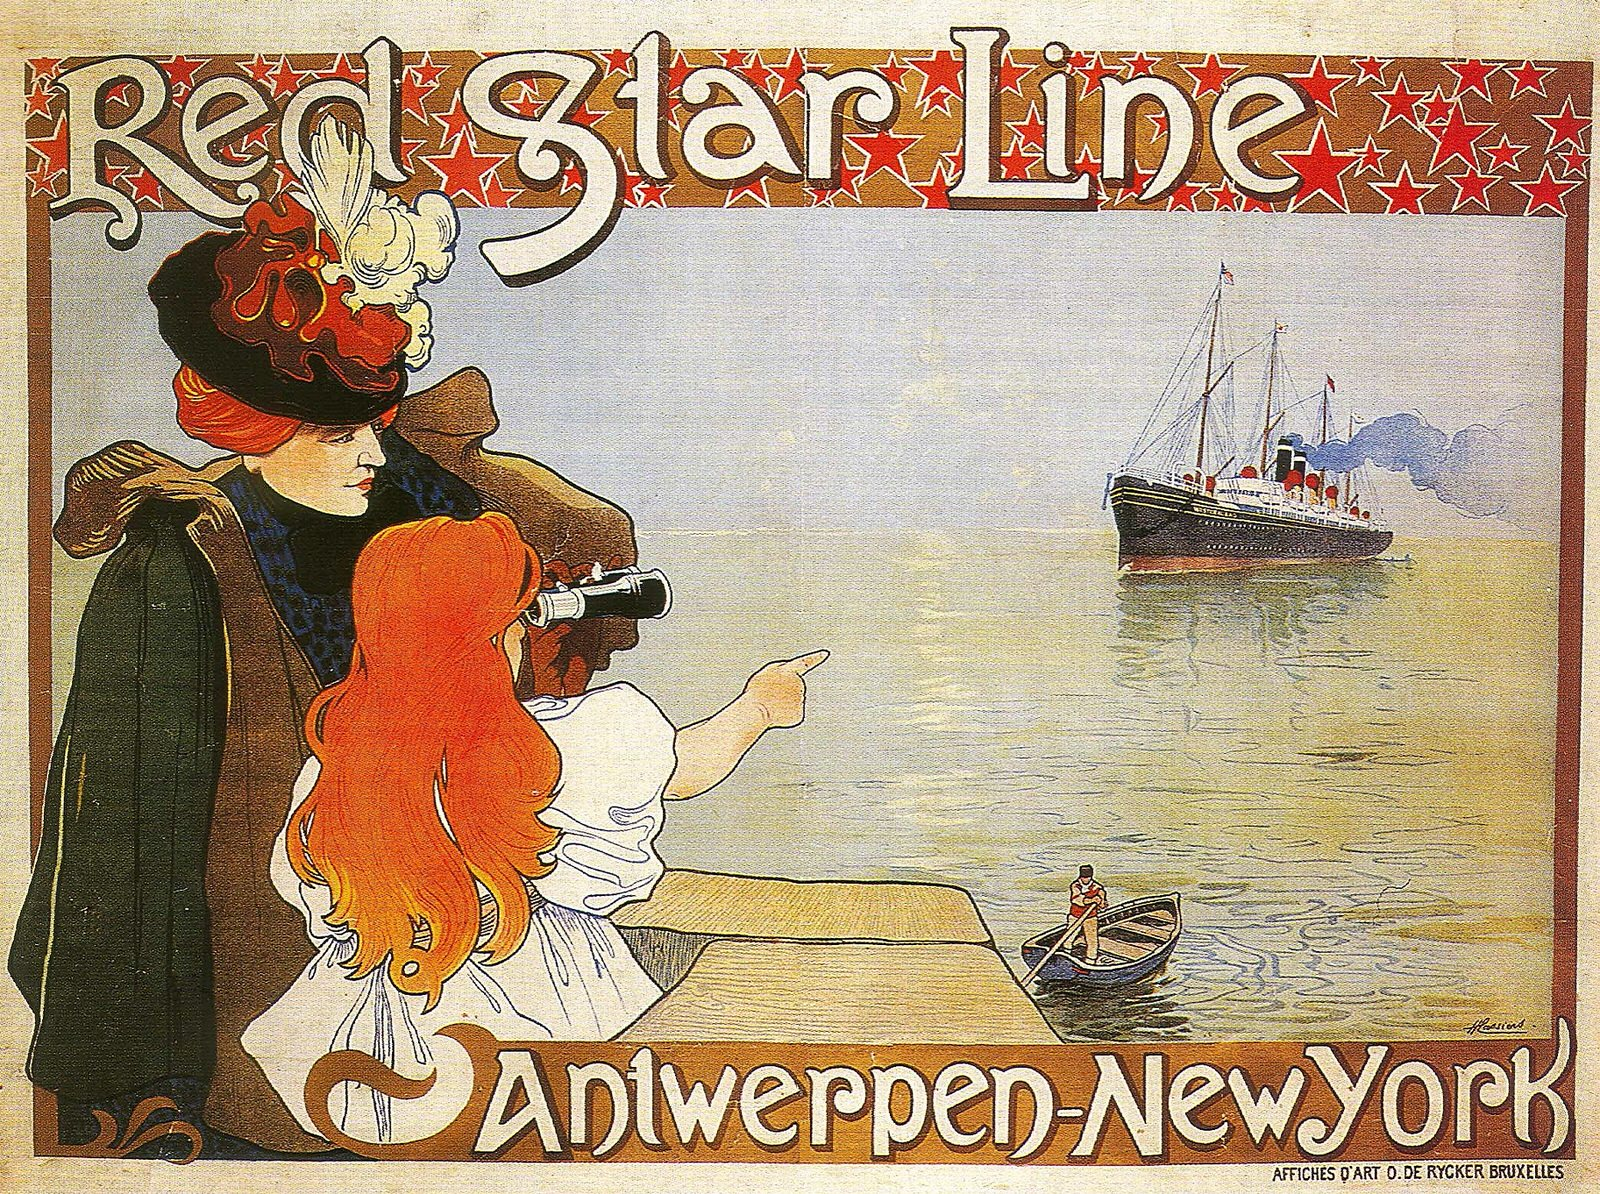 In search of the Red Star Line